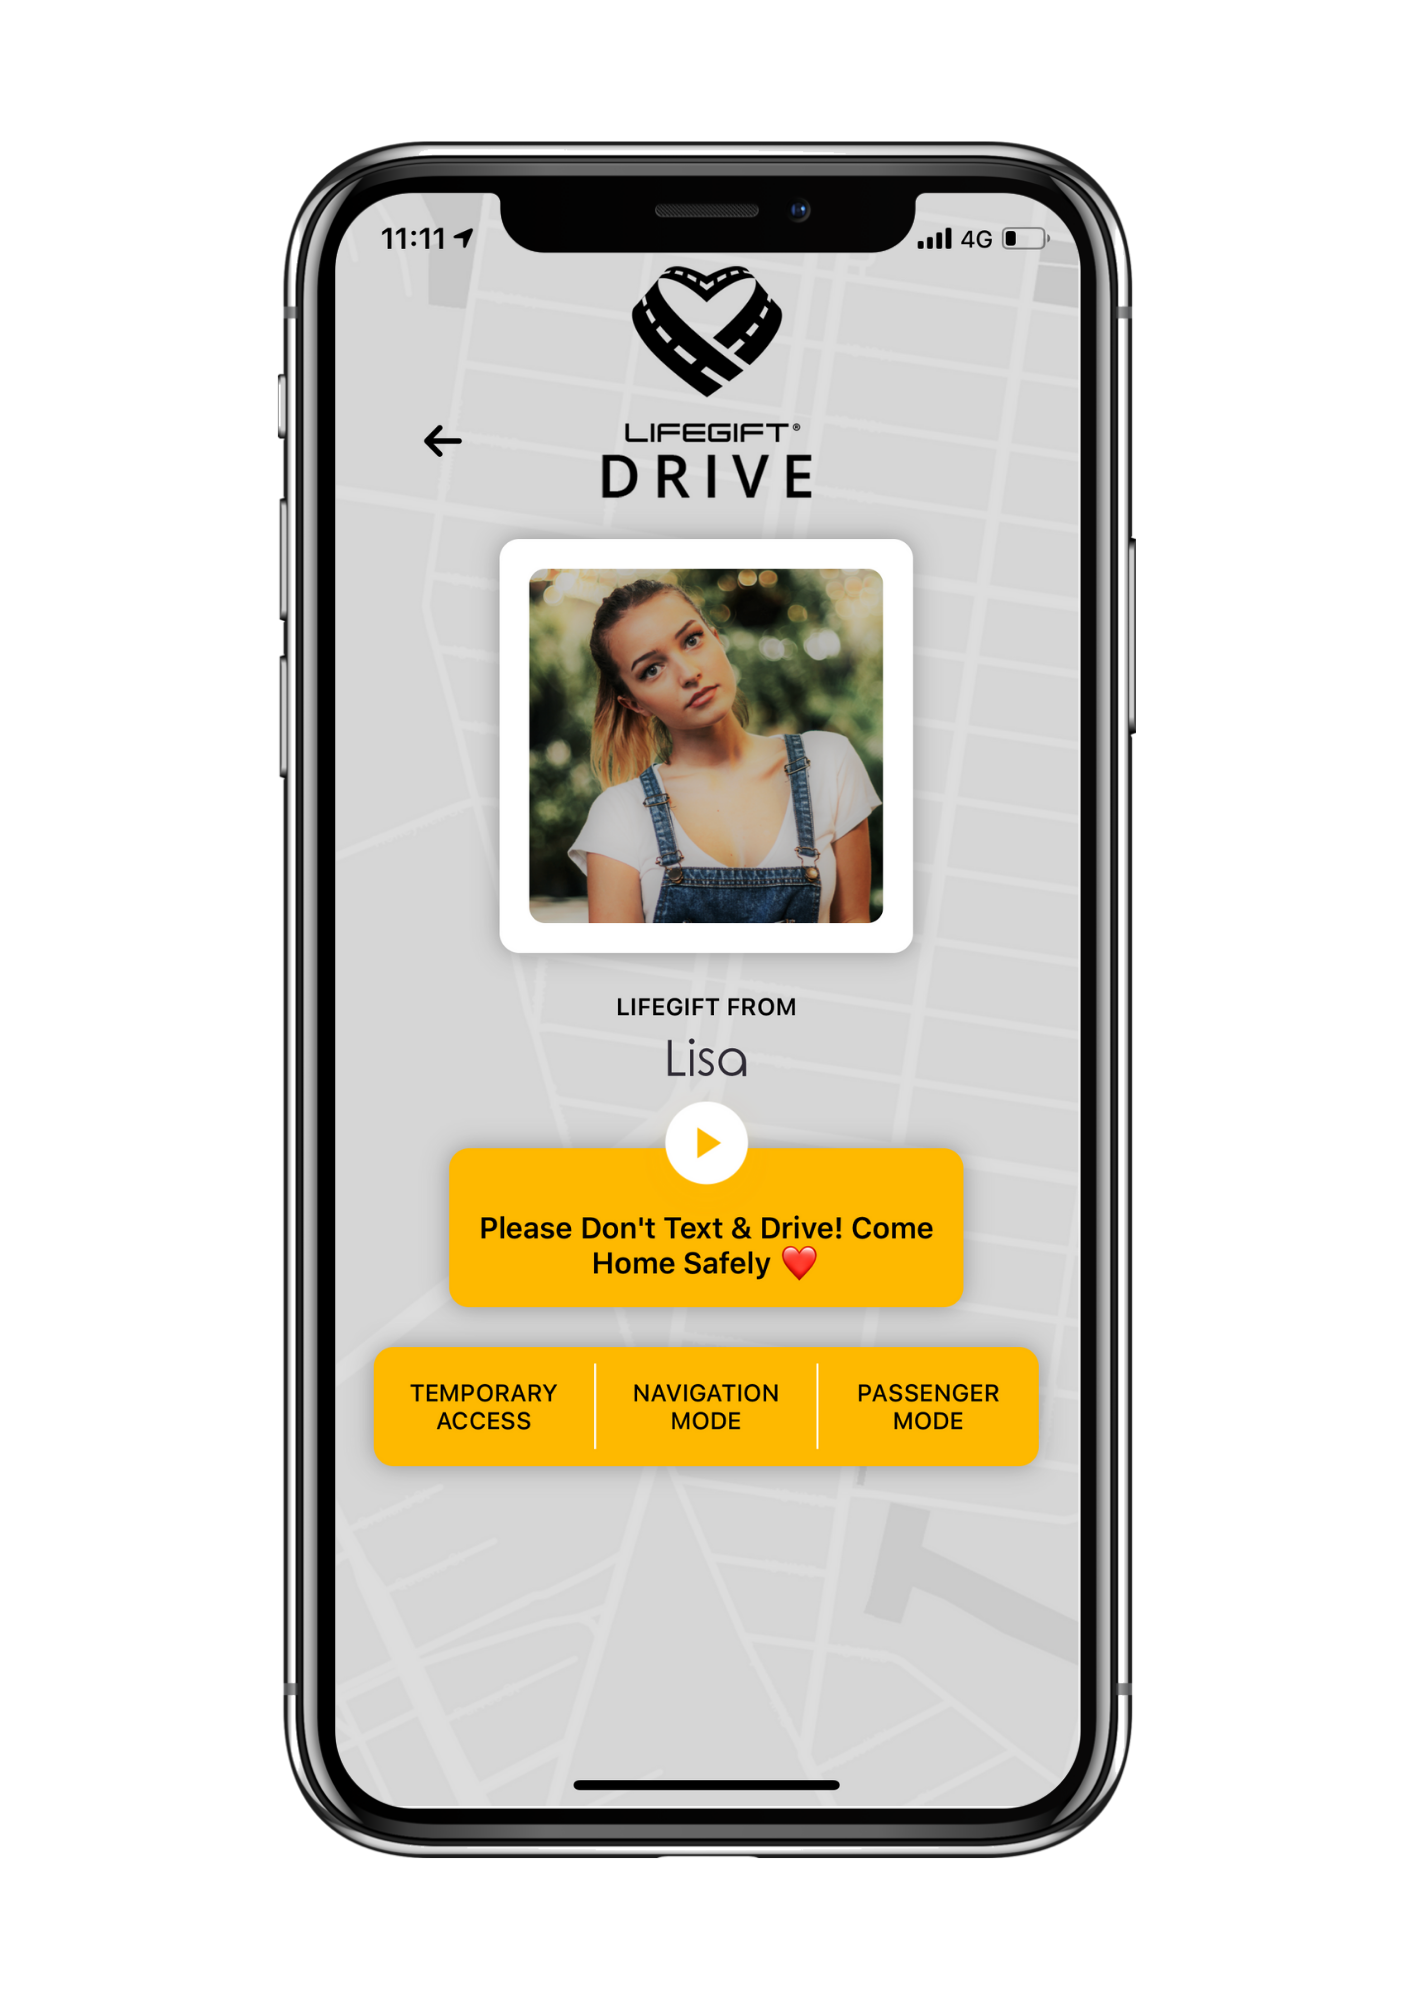 LifeGift® DRIVE: Smartphone Distraction Alert System for Drivers & Pedestrians